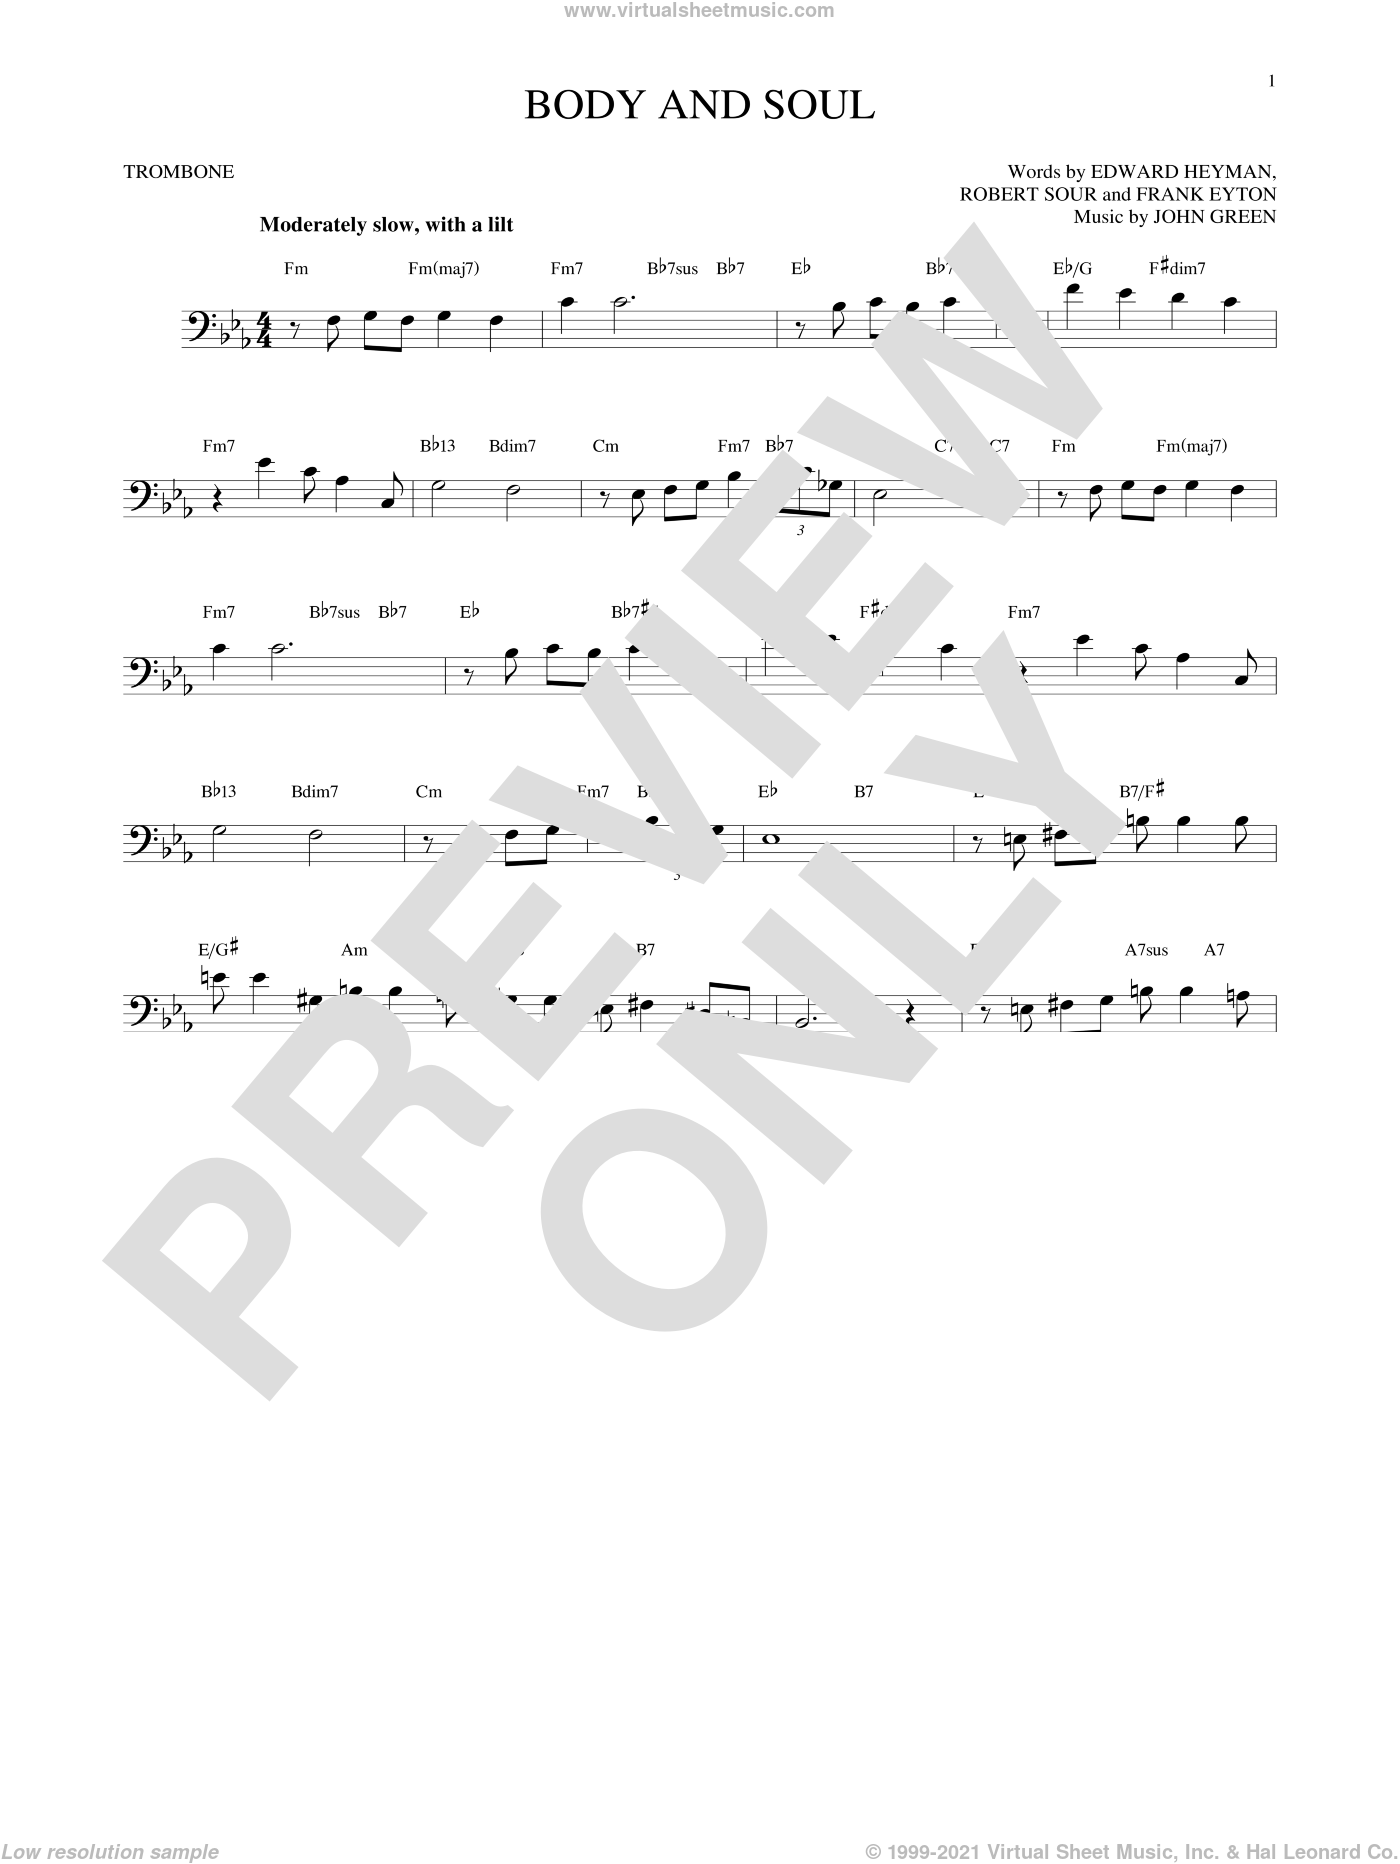 Body And Soul sheet music for trombone solo by Edward Heyman, Tony Bennett & Amy Winehouse, Frank Eyton, Johnny Green and Robert Sour, intermediate skill level